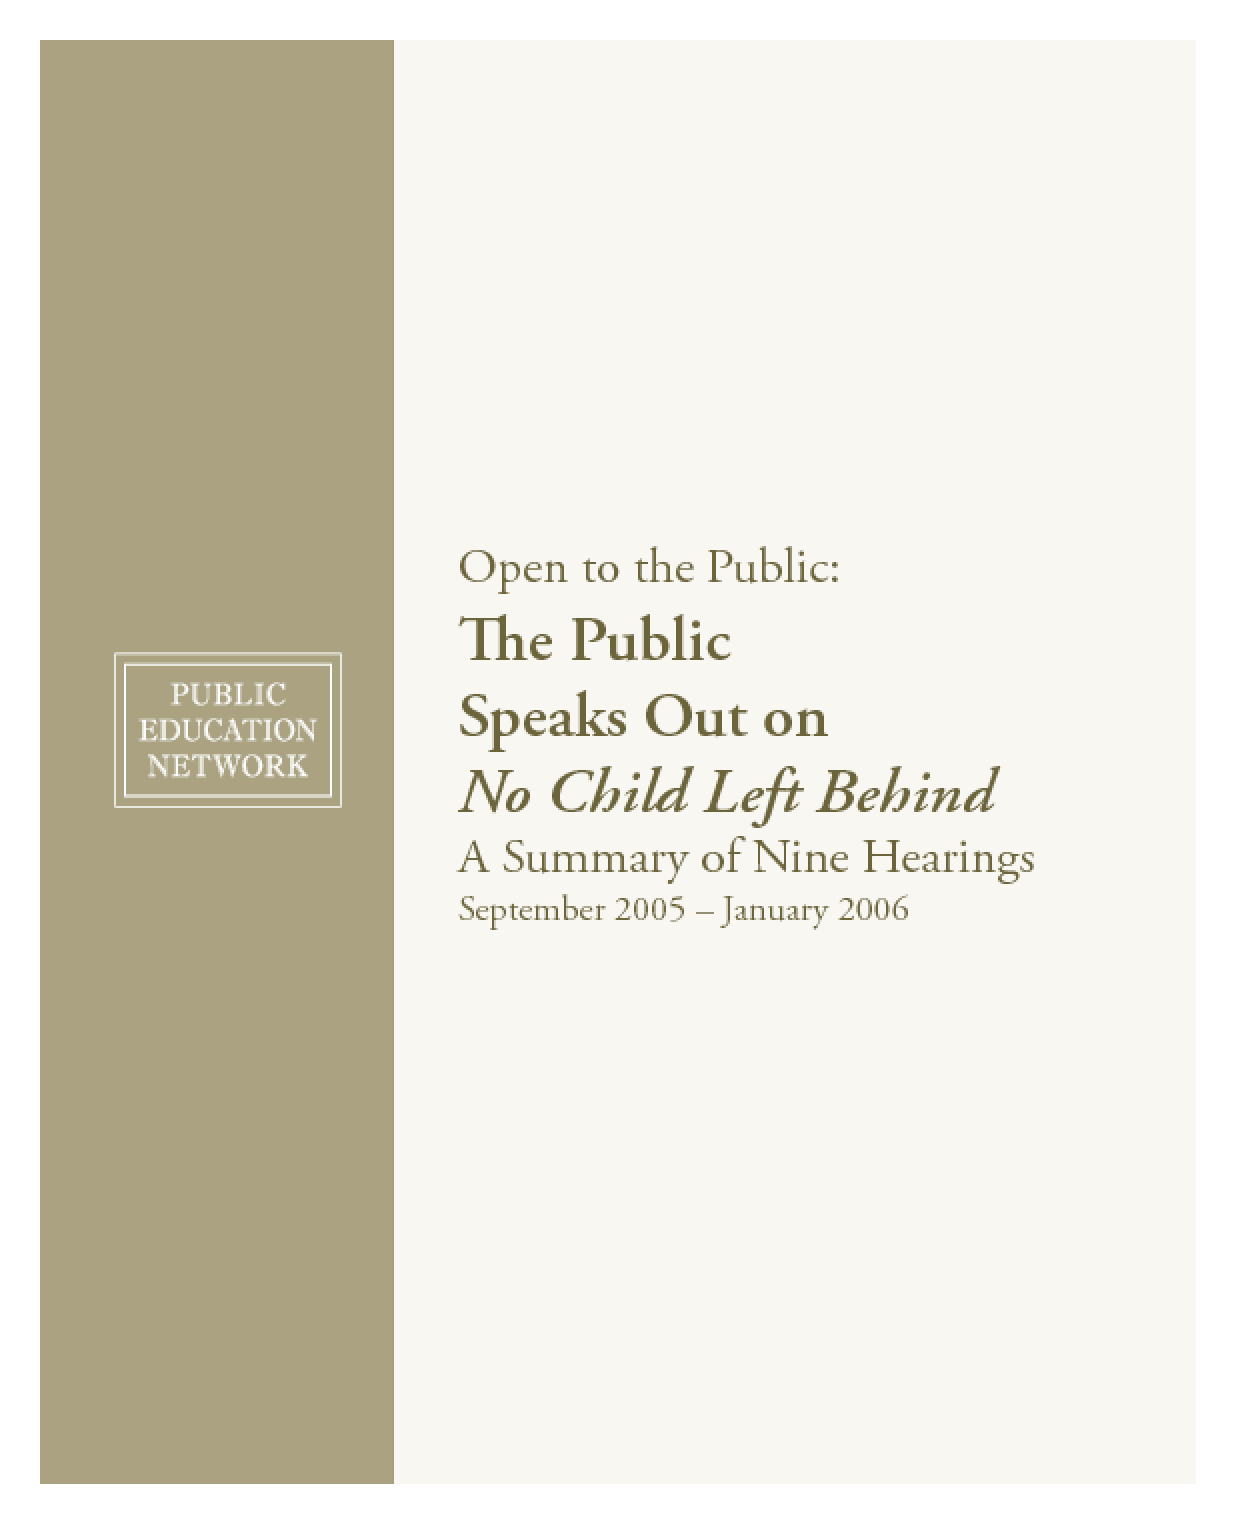 Open to the Public: The Public Speaks Out on No Child Left Behind - A Summary of Nine Hearings September 2005-January 2006